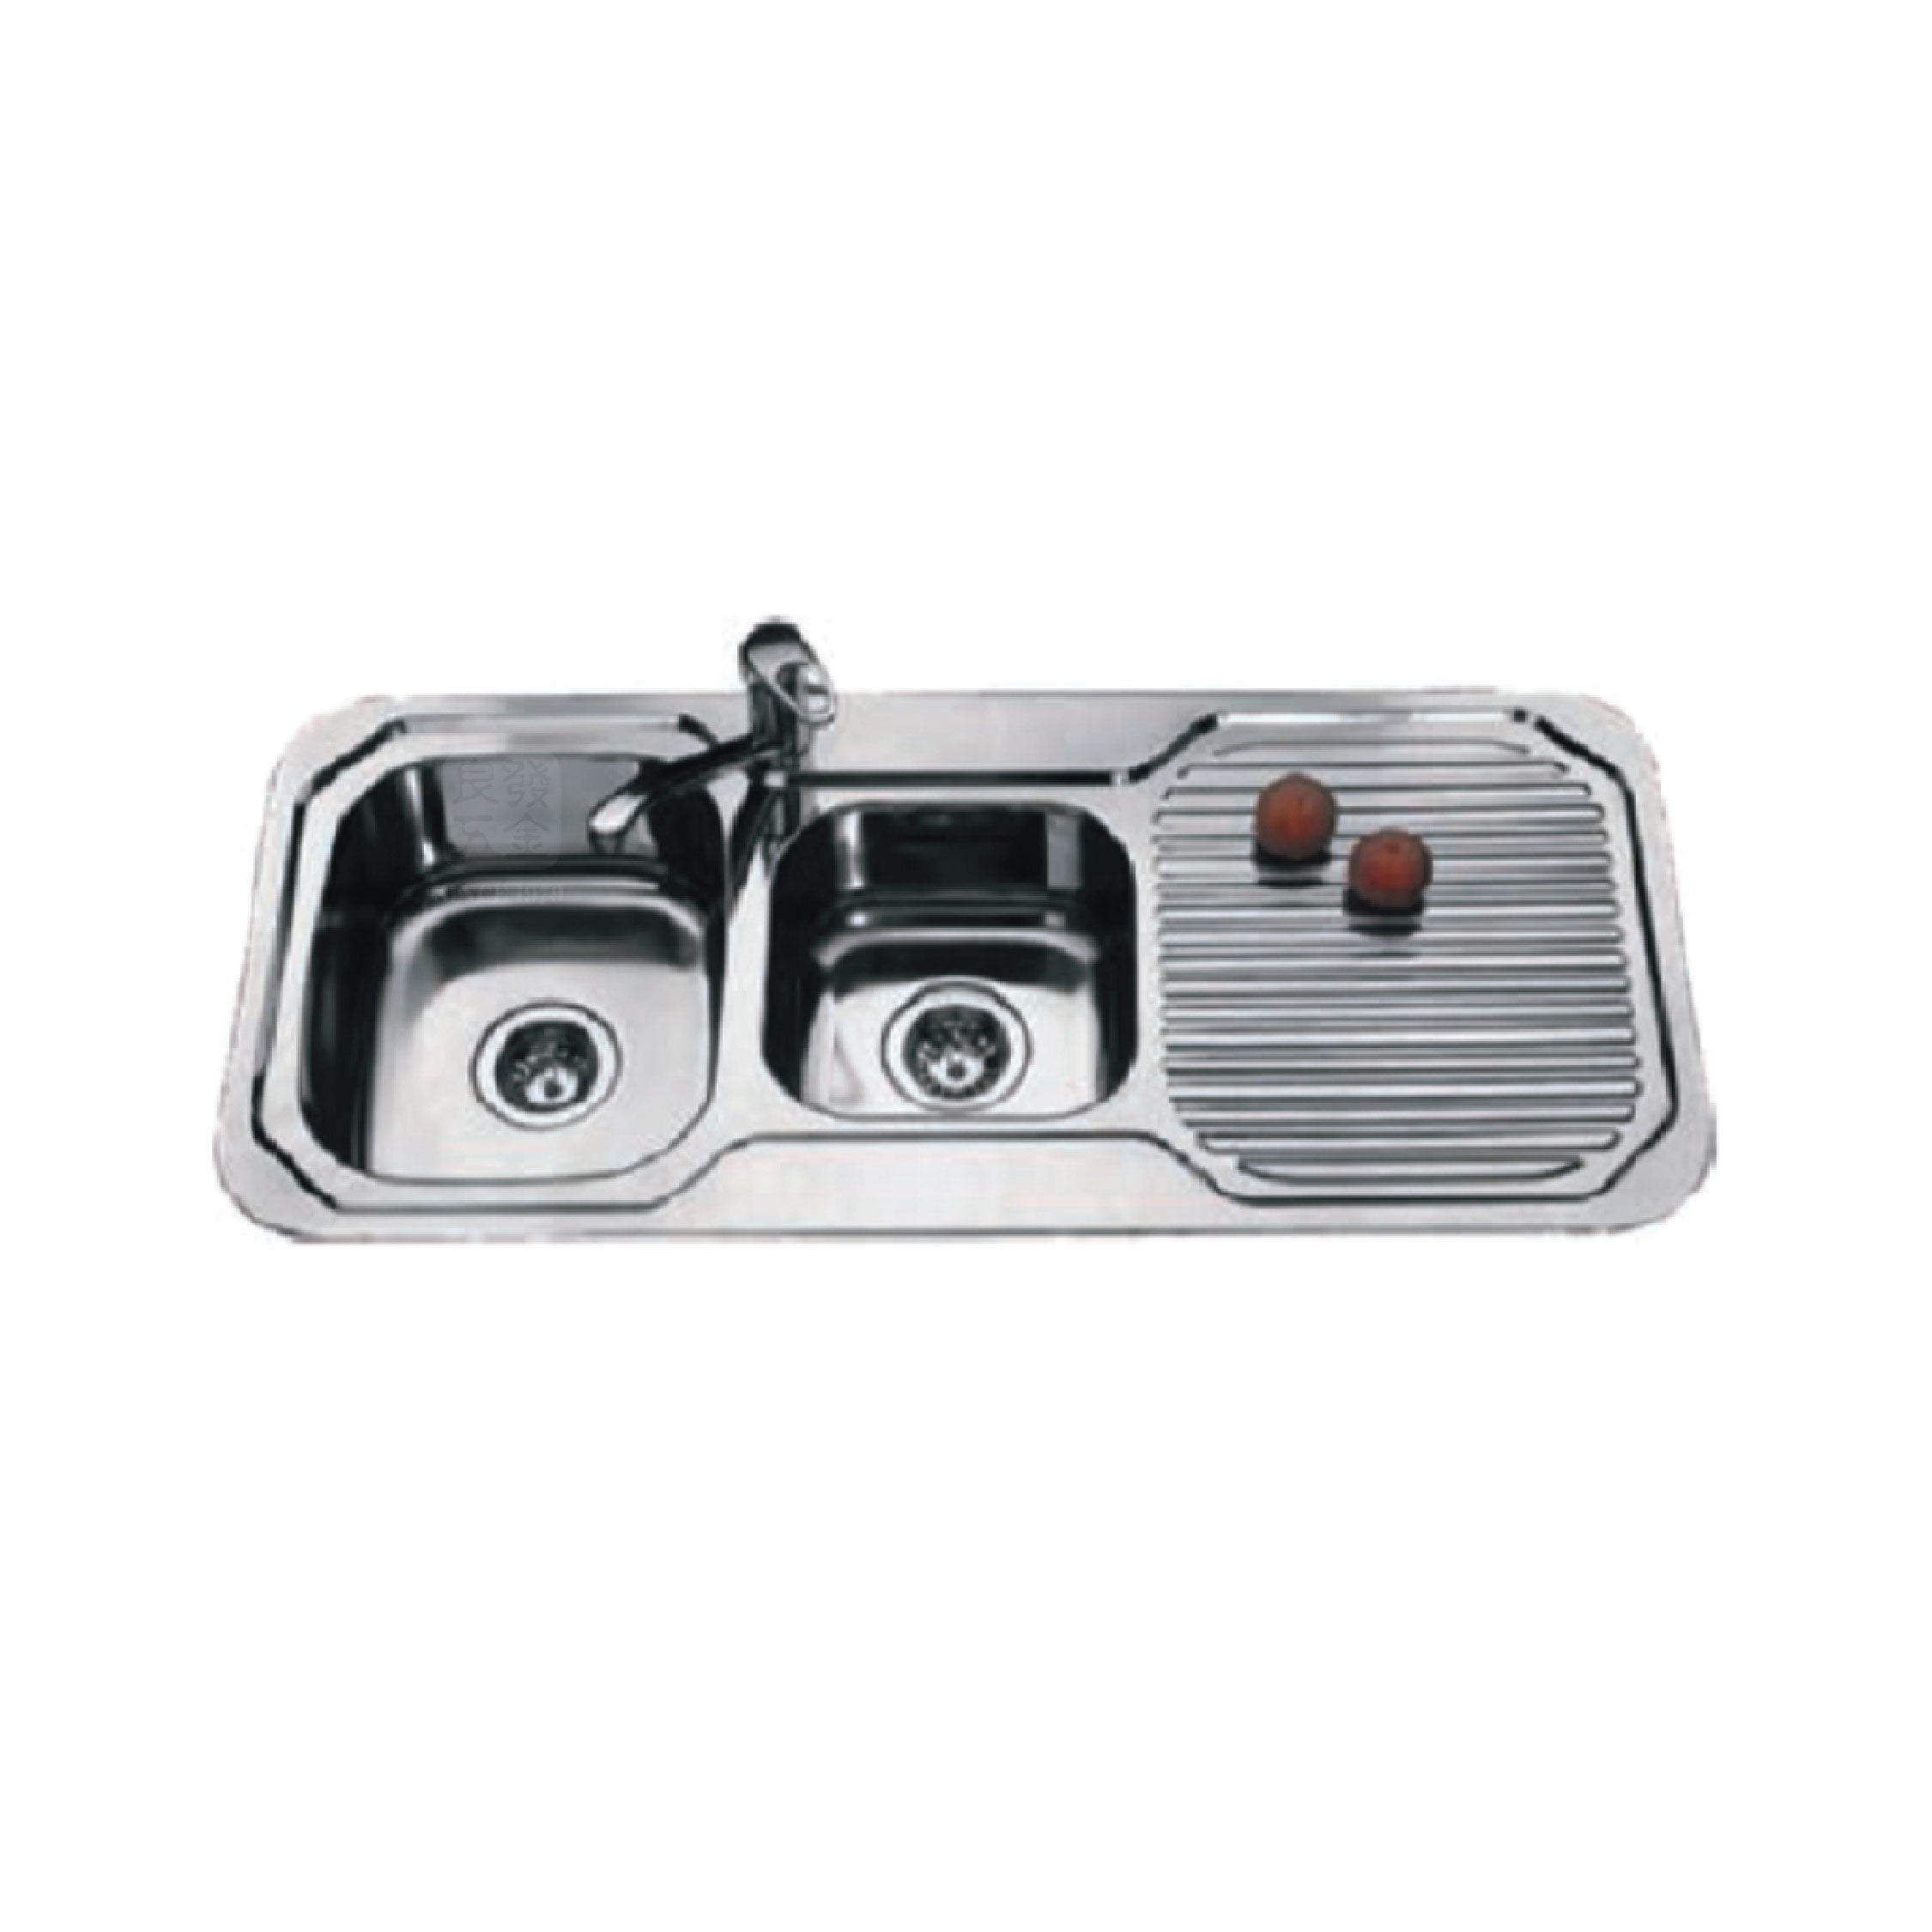 SUS304 Double Bowl With Drainer Sink